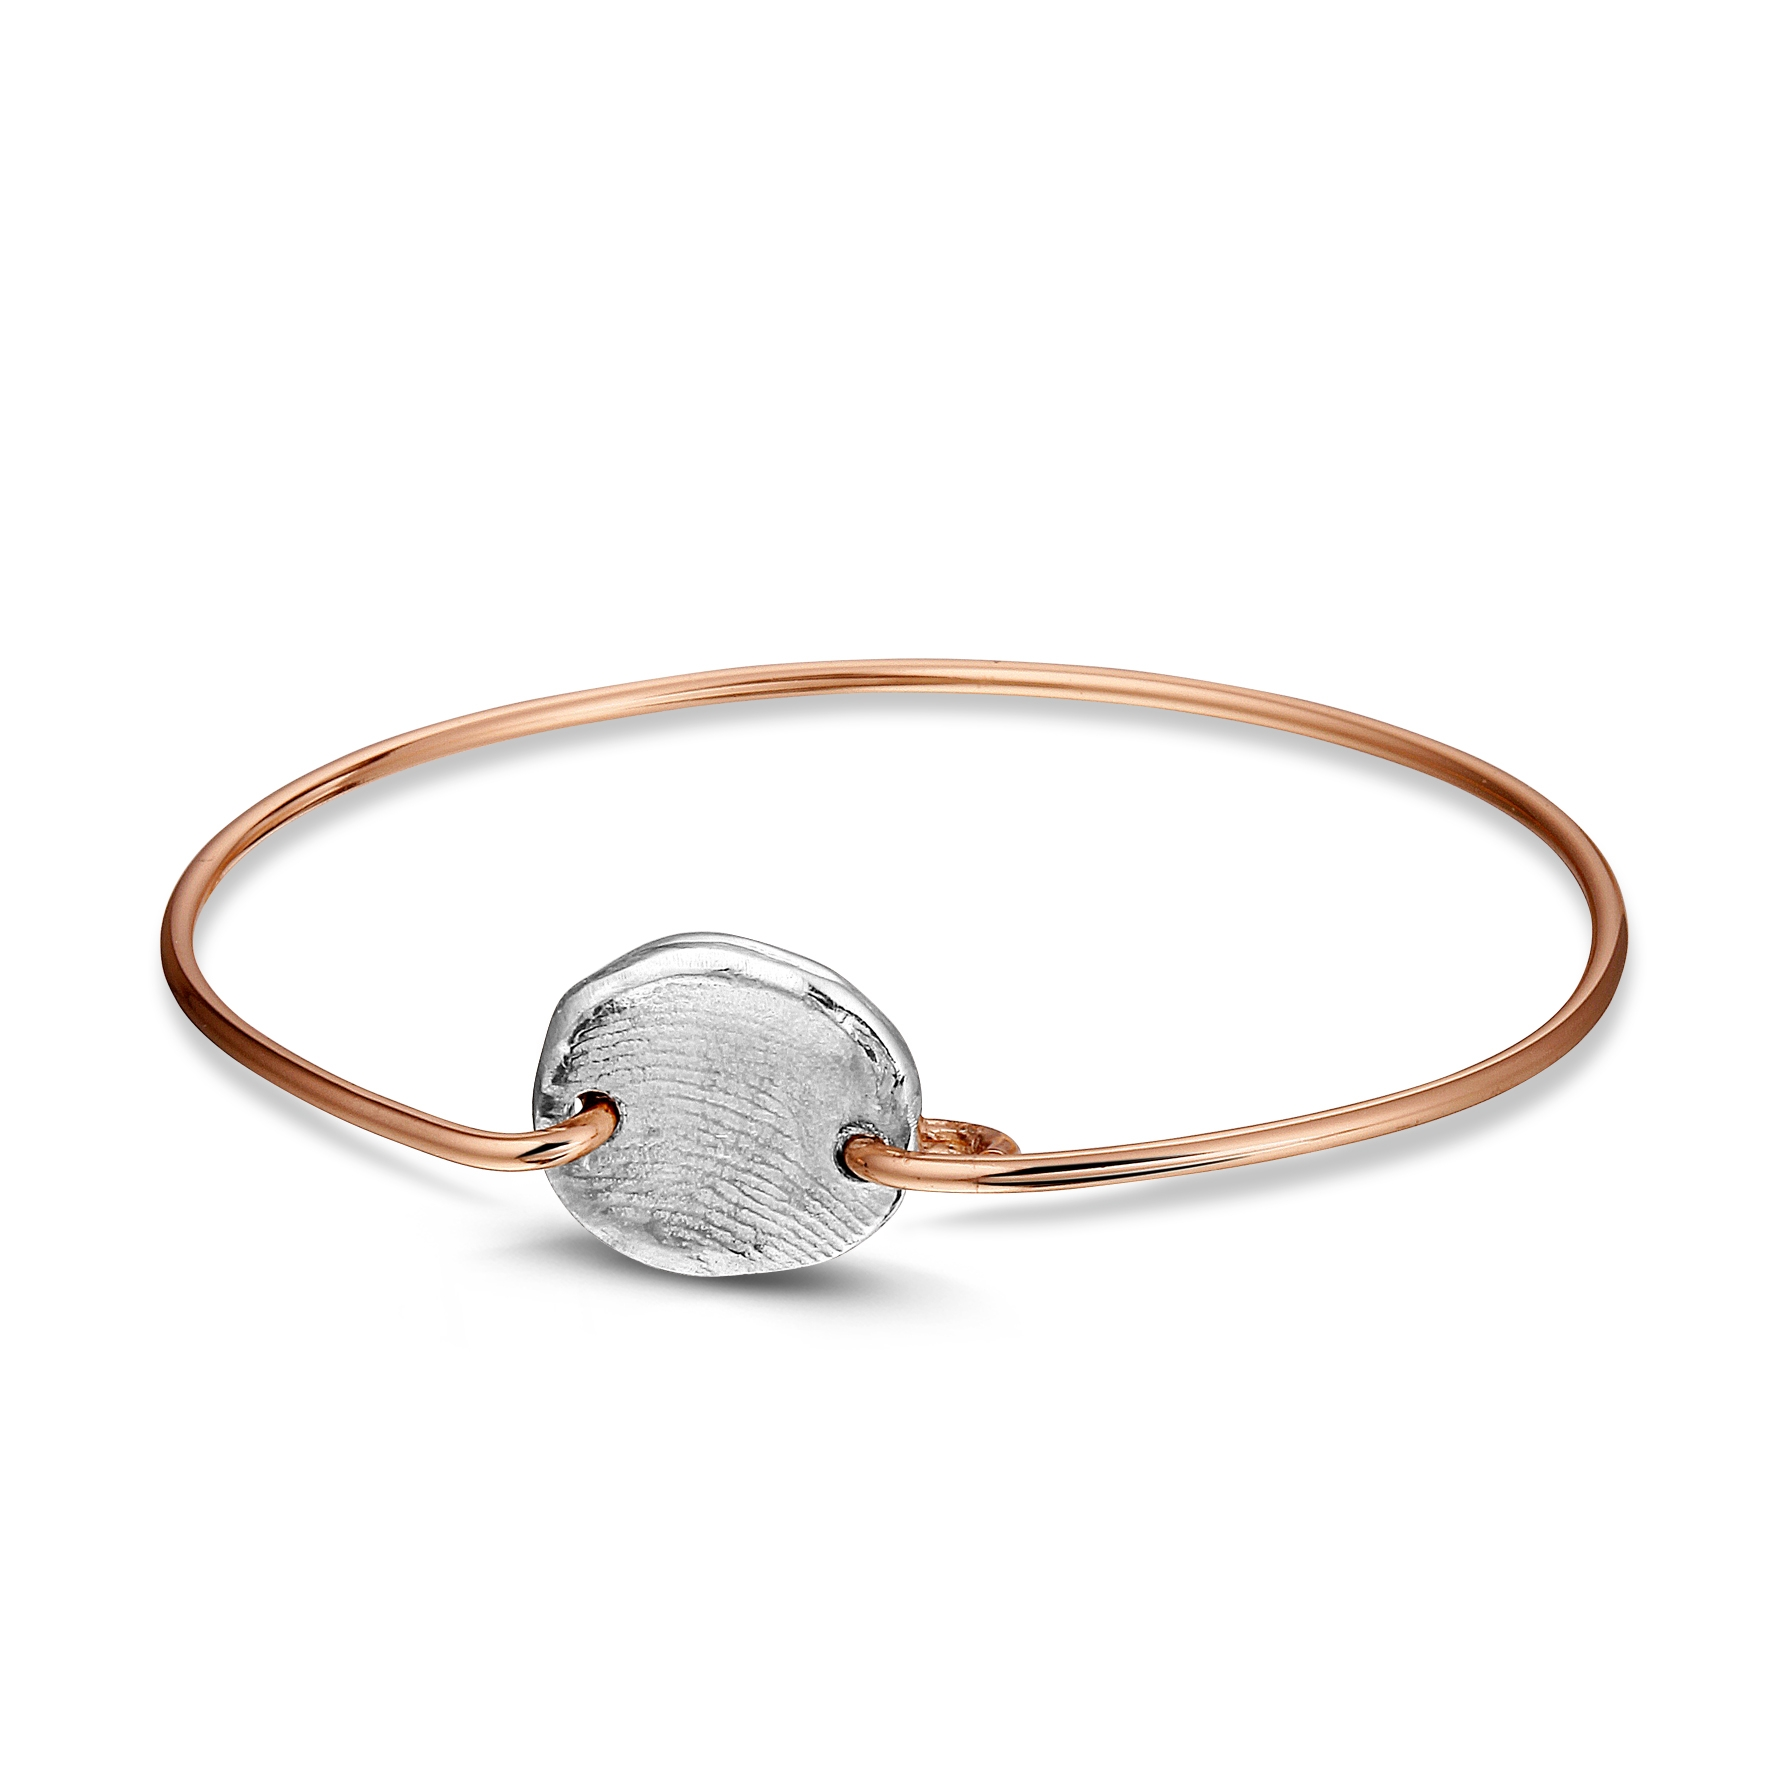 gedenk armband 406 SR Inkt/Scan see you